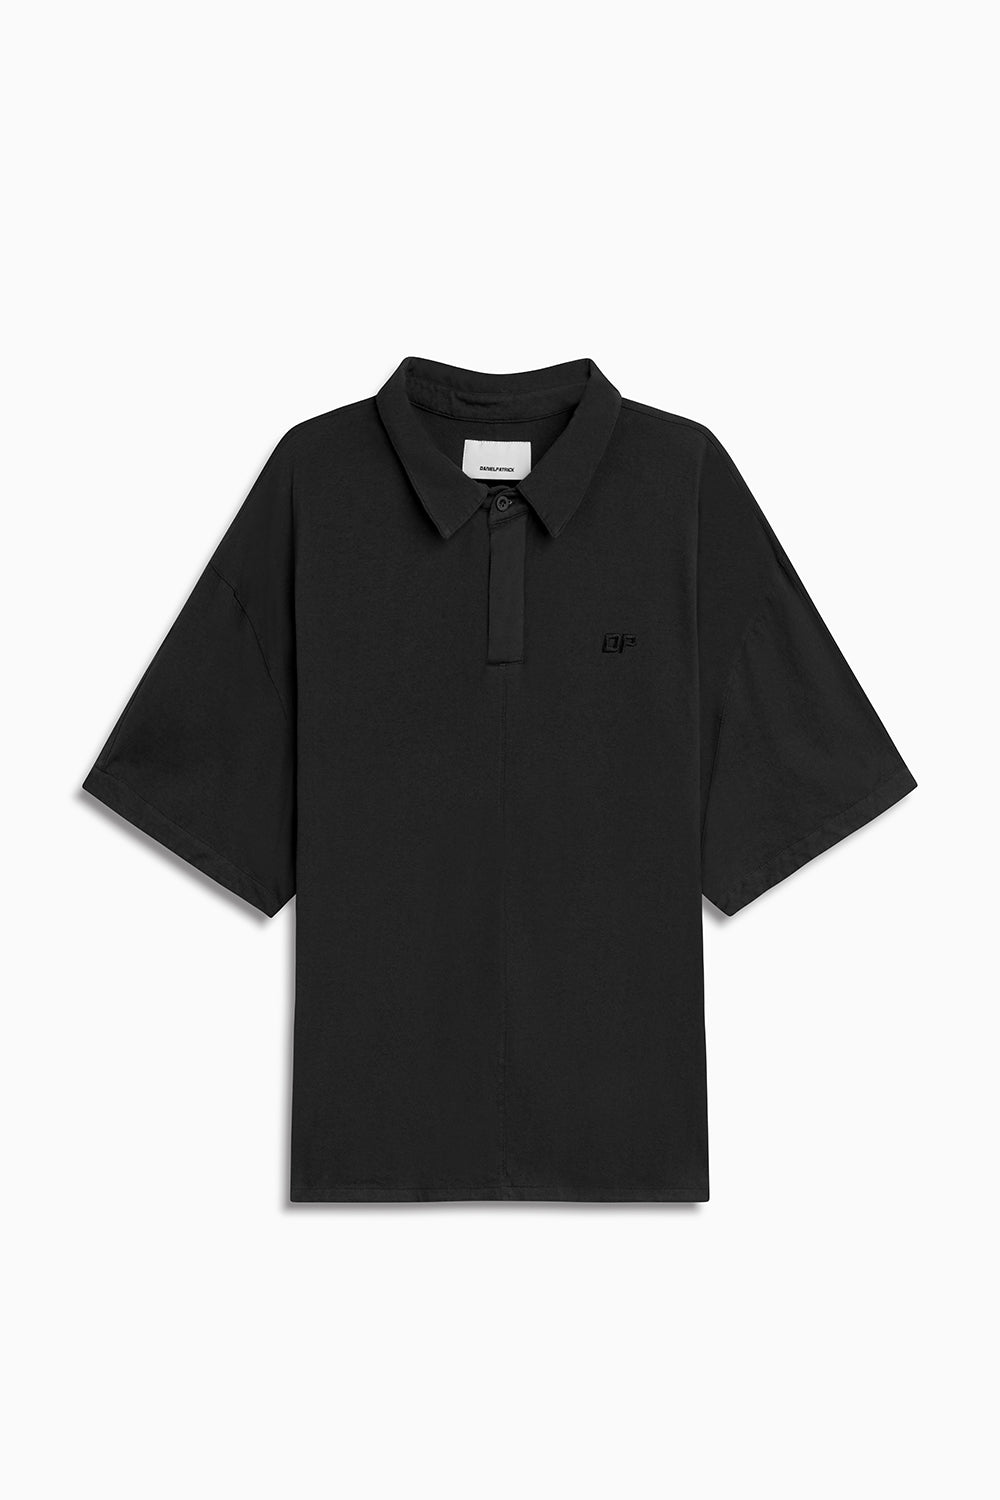 box jersey polo / washed black